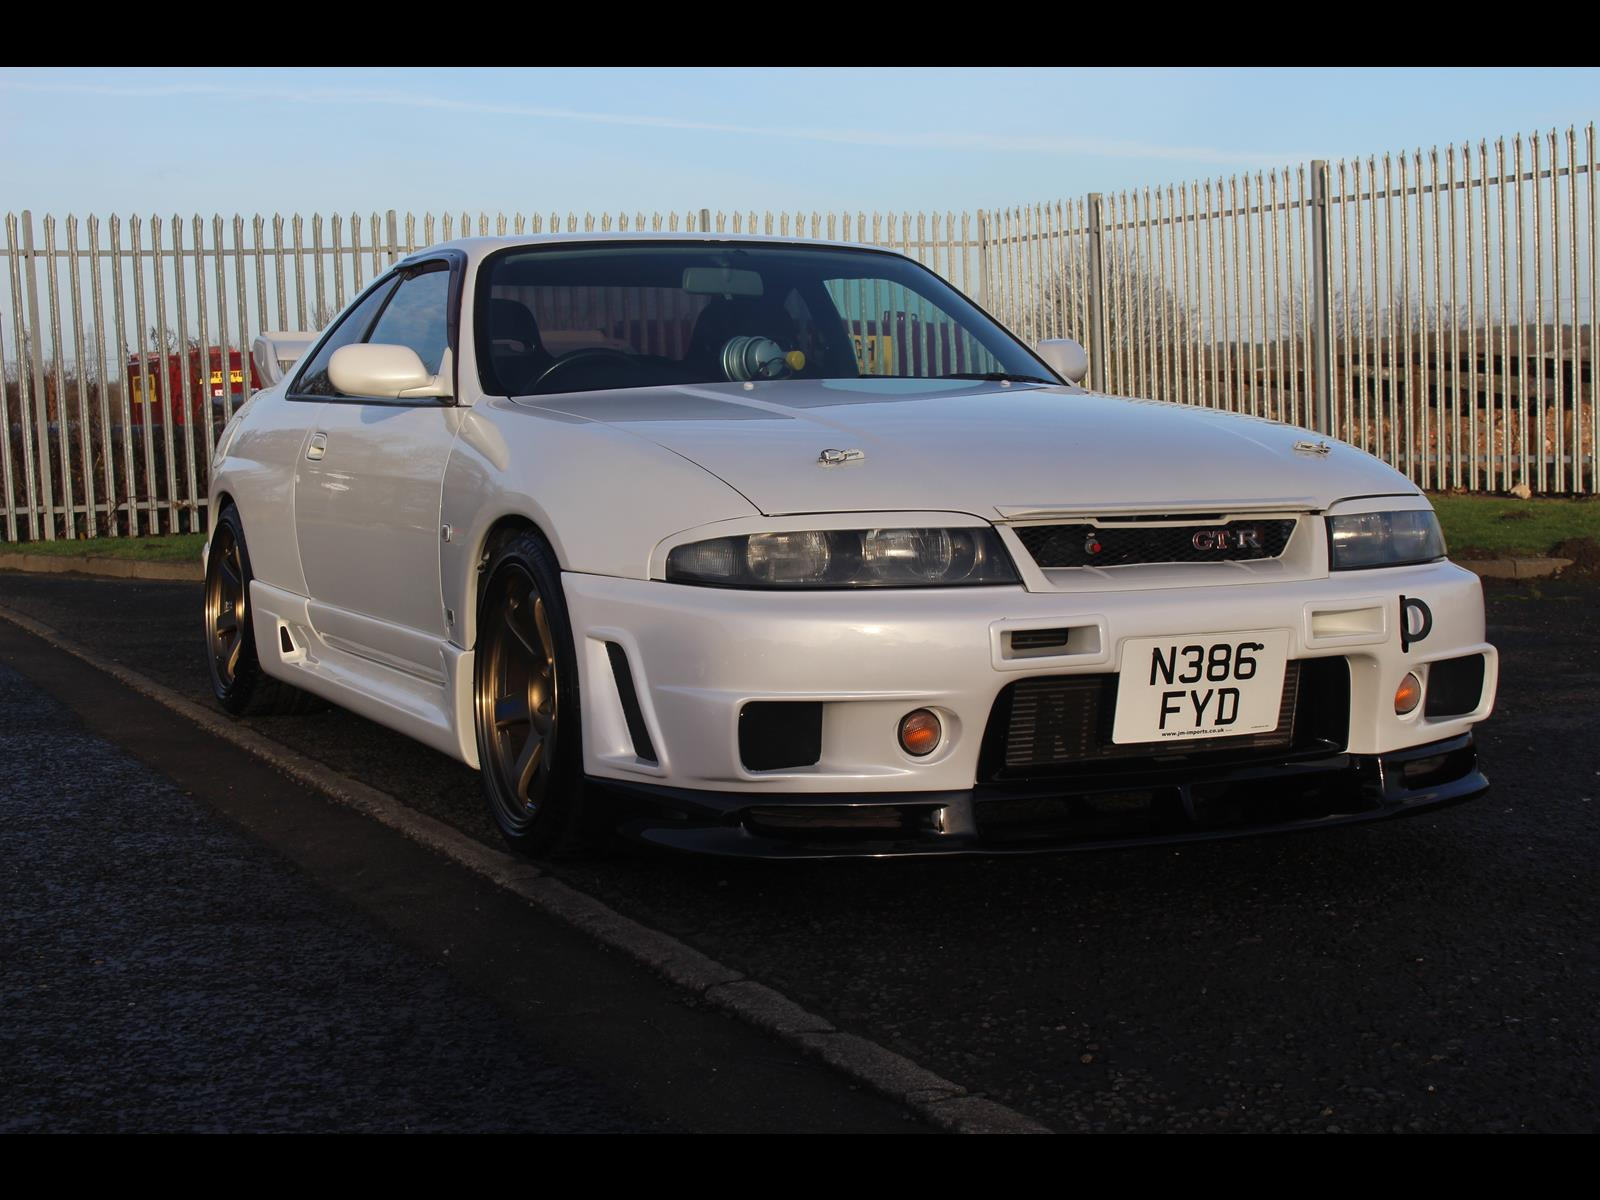 Nissan Gtr Interior >> 1995 Nissan Skyline R33 GTR 5 Speed Manual Nismo 400R Kit